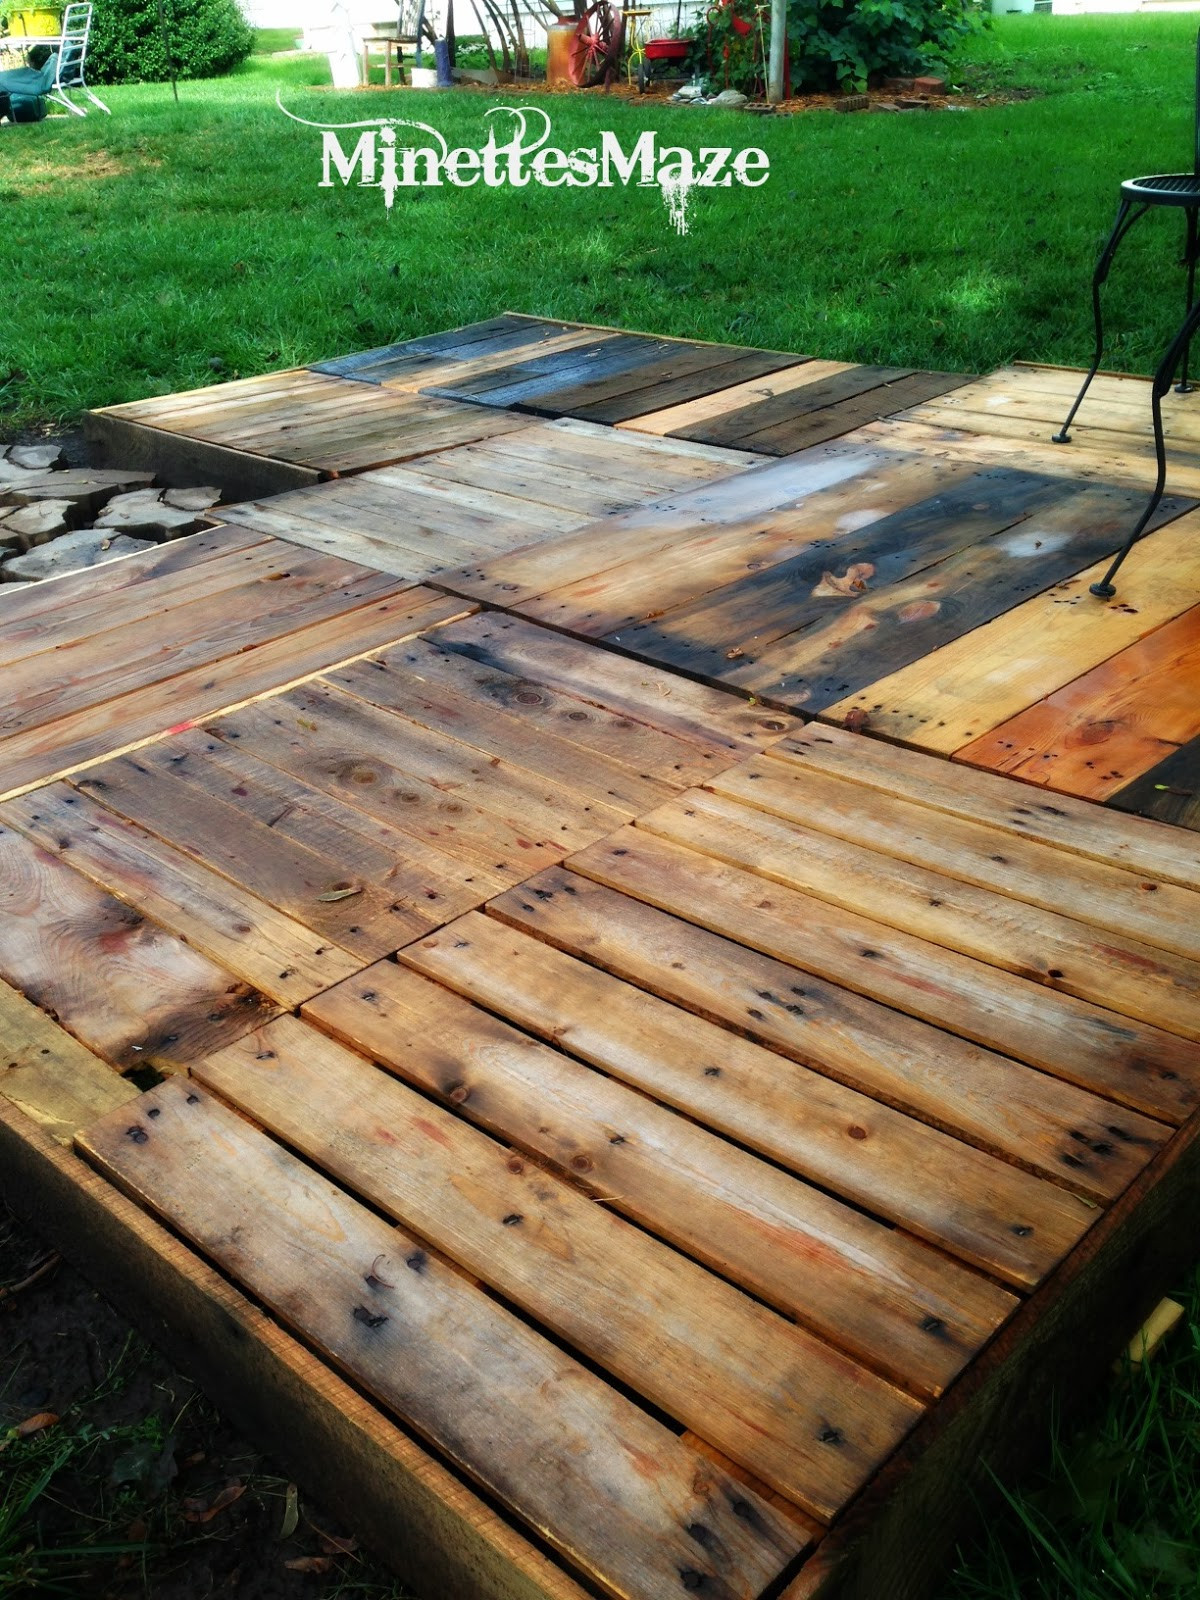 Best ideas about DIY Pallet Deck . Save or Pin MinettesMaze DIY Pallet Deck Now.